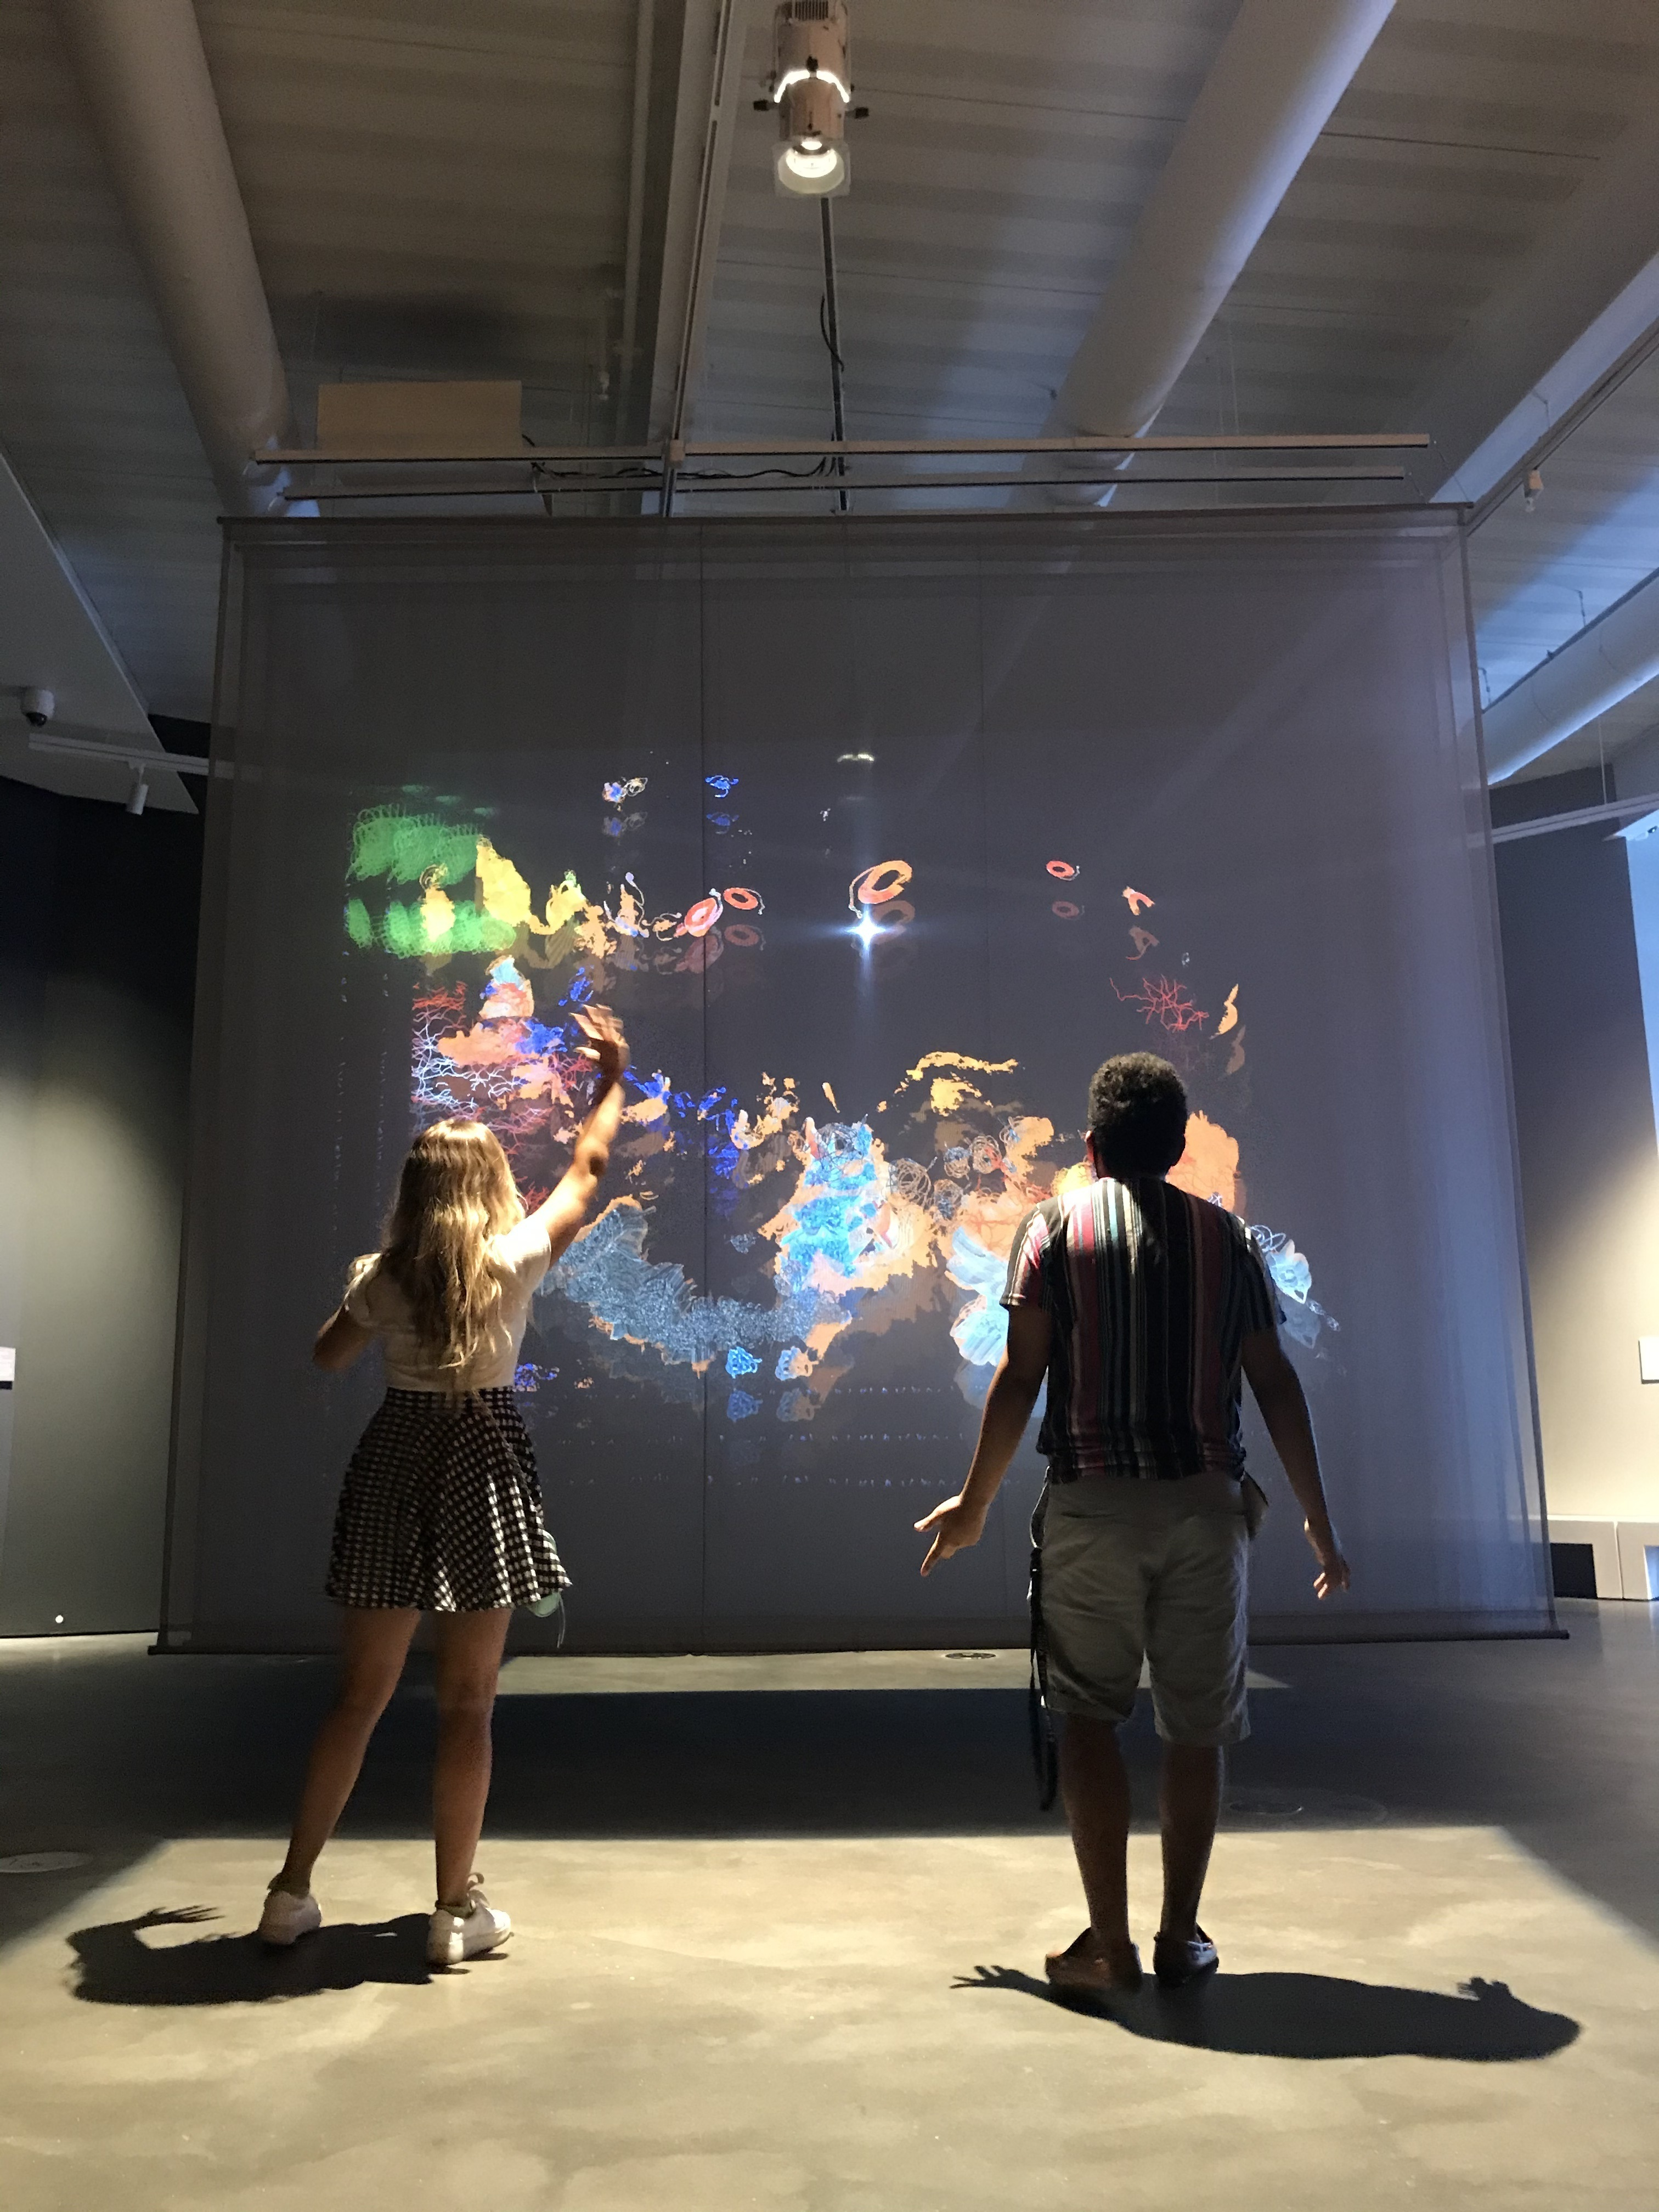 Two young people interact with a large abstract work of video art projected onto a large, square piece of fabric